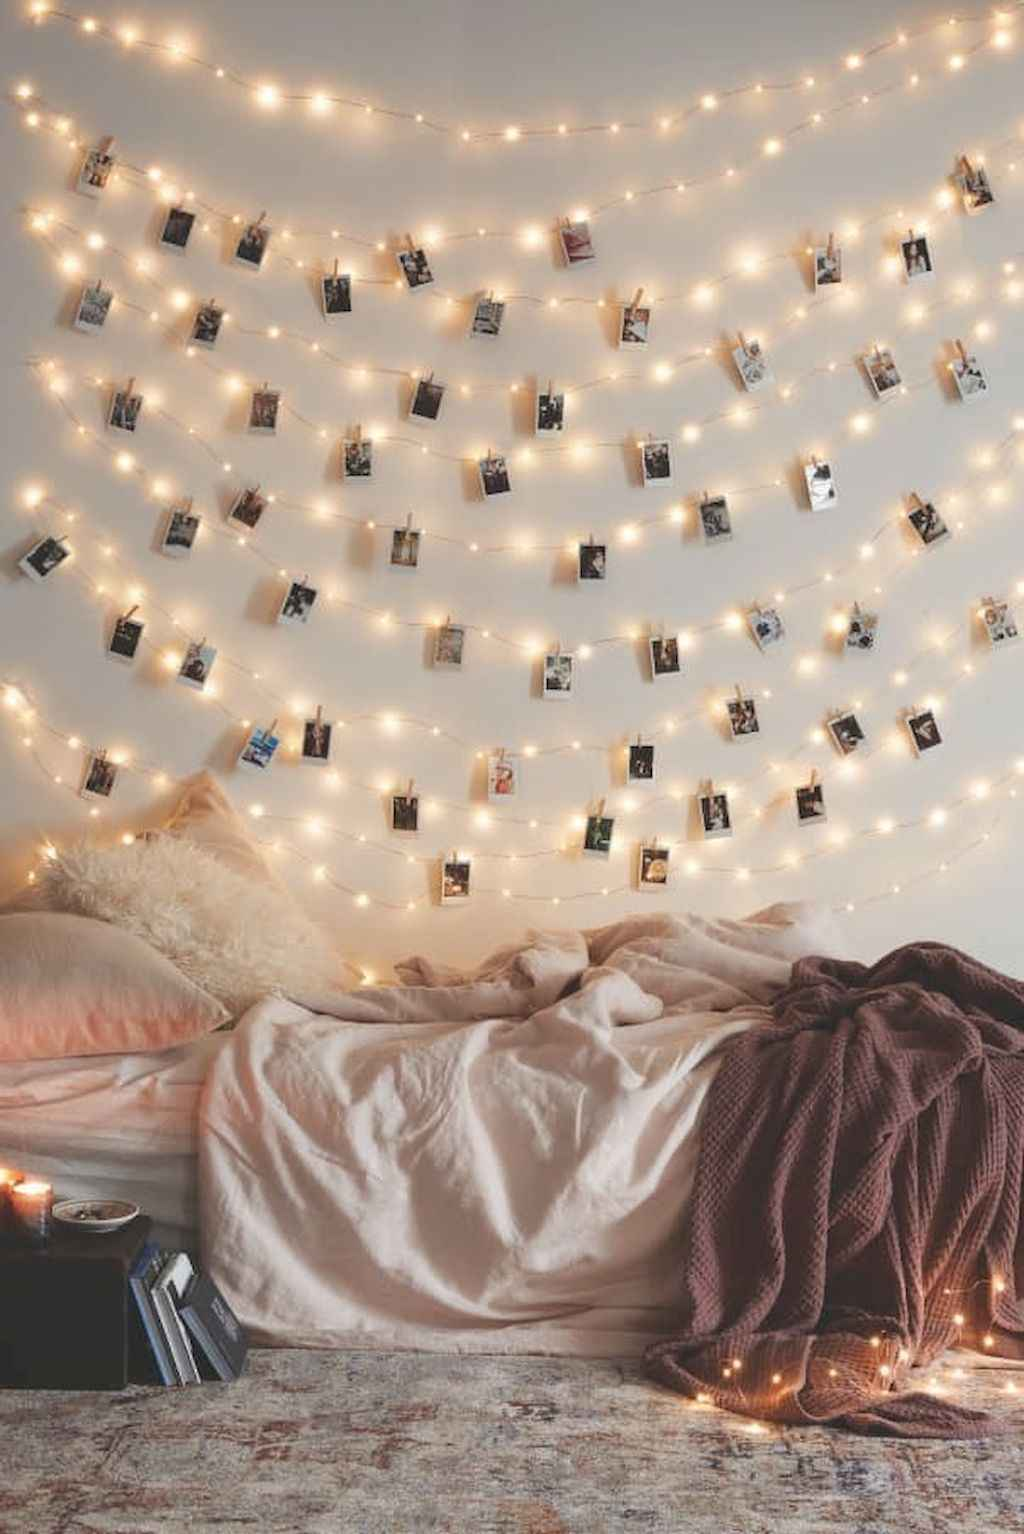 Awesome bedroom decoration ideas (55)